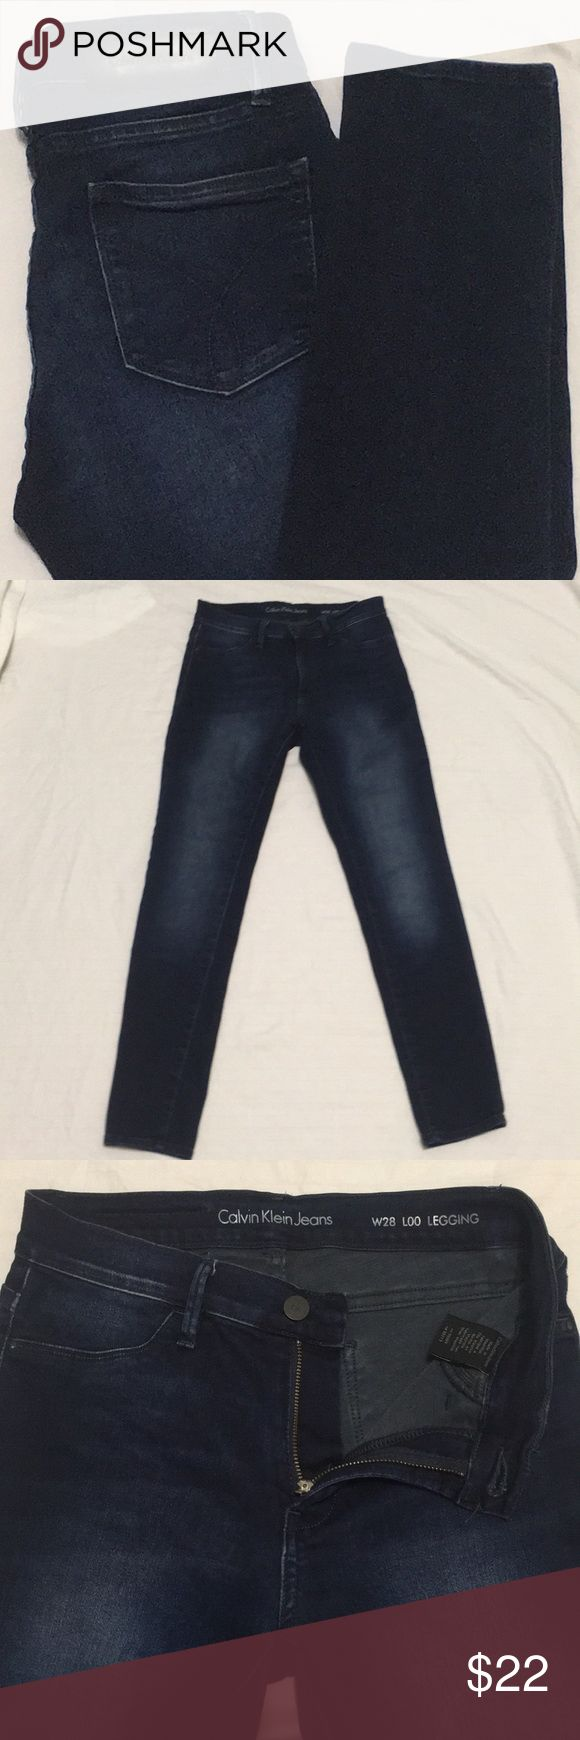 """Calvin Klein Denim Leggings Size 28 Leggings are in excellent condition. I found these to run a little small in the waist for a size 28. Very soft with a fair amount of stretch. 98% cotton , 2% elastane. Dark blue with some subtle factory whiskering and fading. While laying flat: 28"""" inseam, 8.5"""" rise, 13.5"""" waist (waist measured straight across without stretching). Thanks for shopping! Calvin Klein Jeans Pants Leggings"""